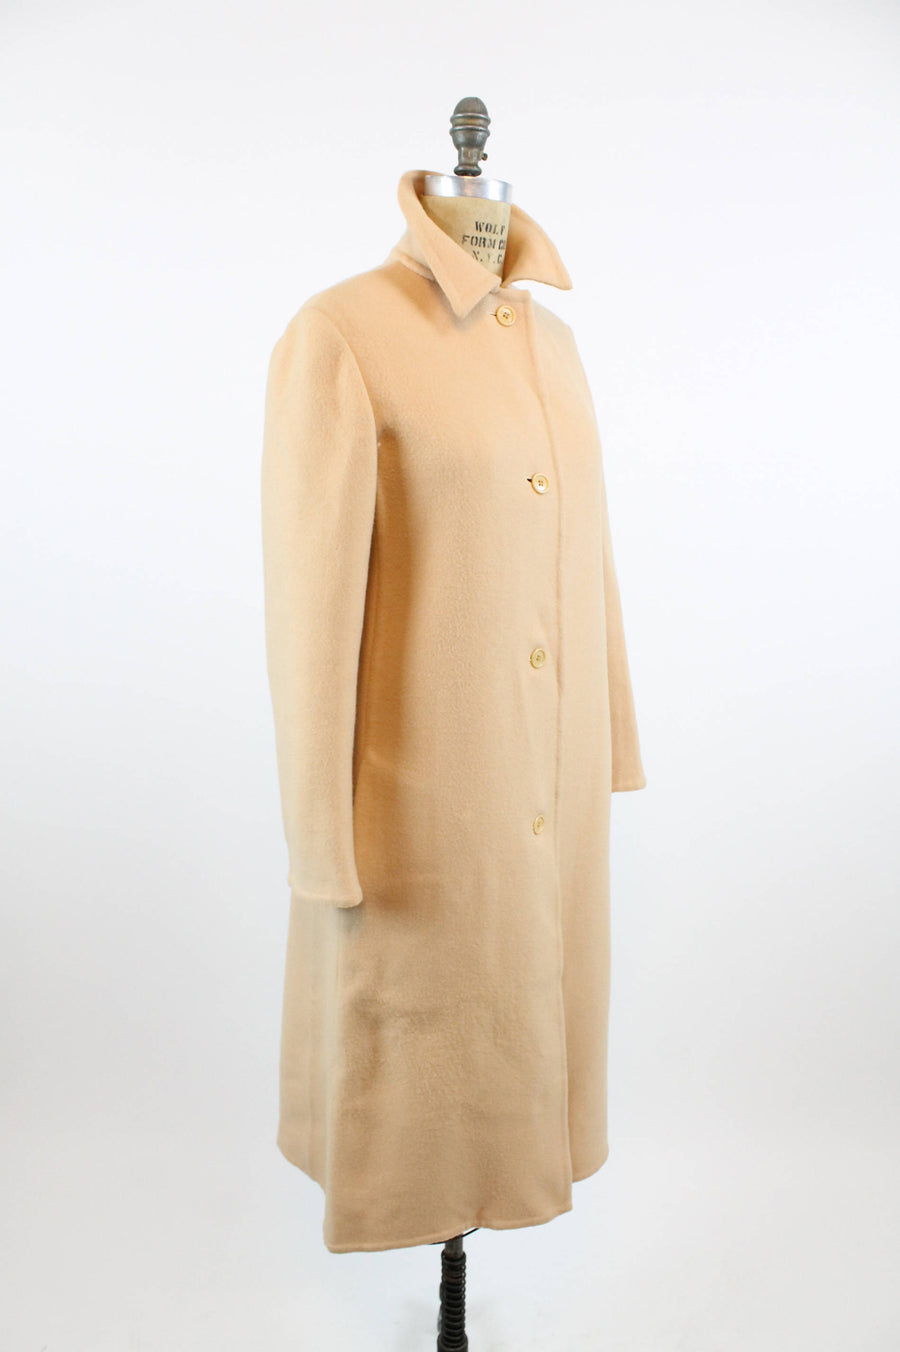 1980s Halston I. Magnin coat | wool trench | small